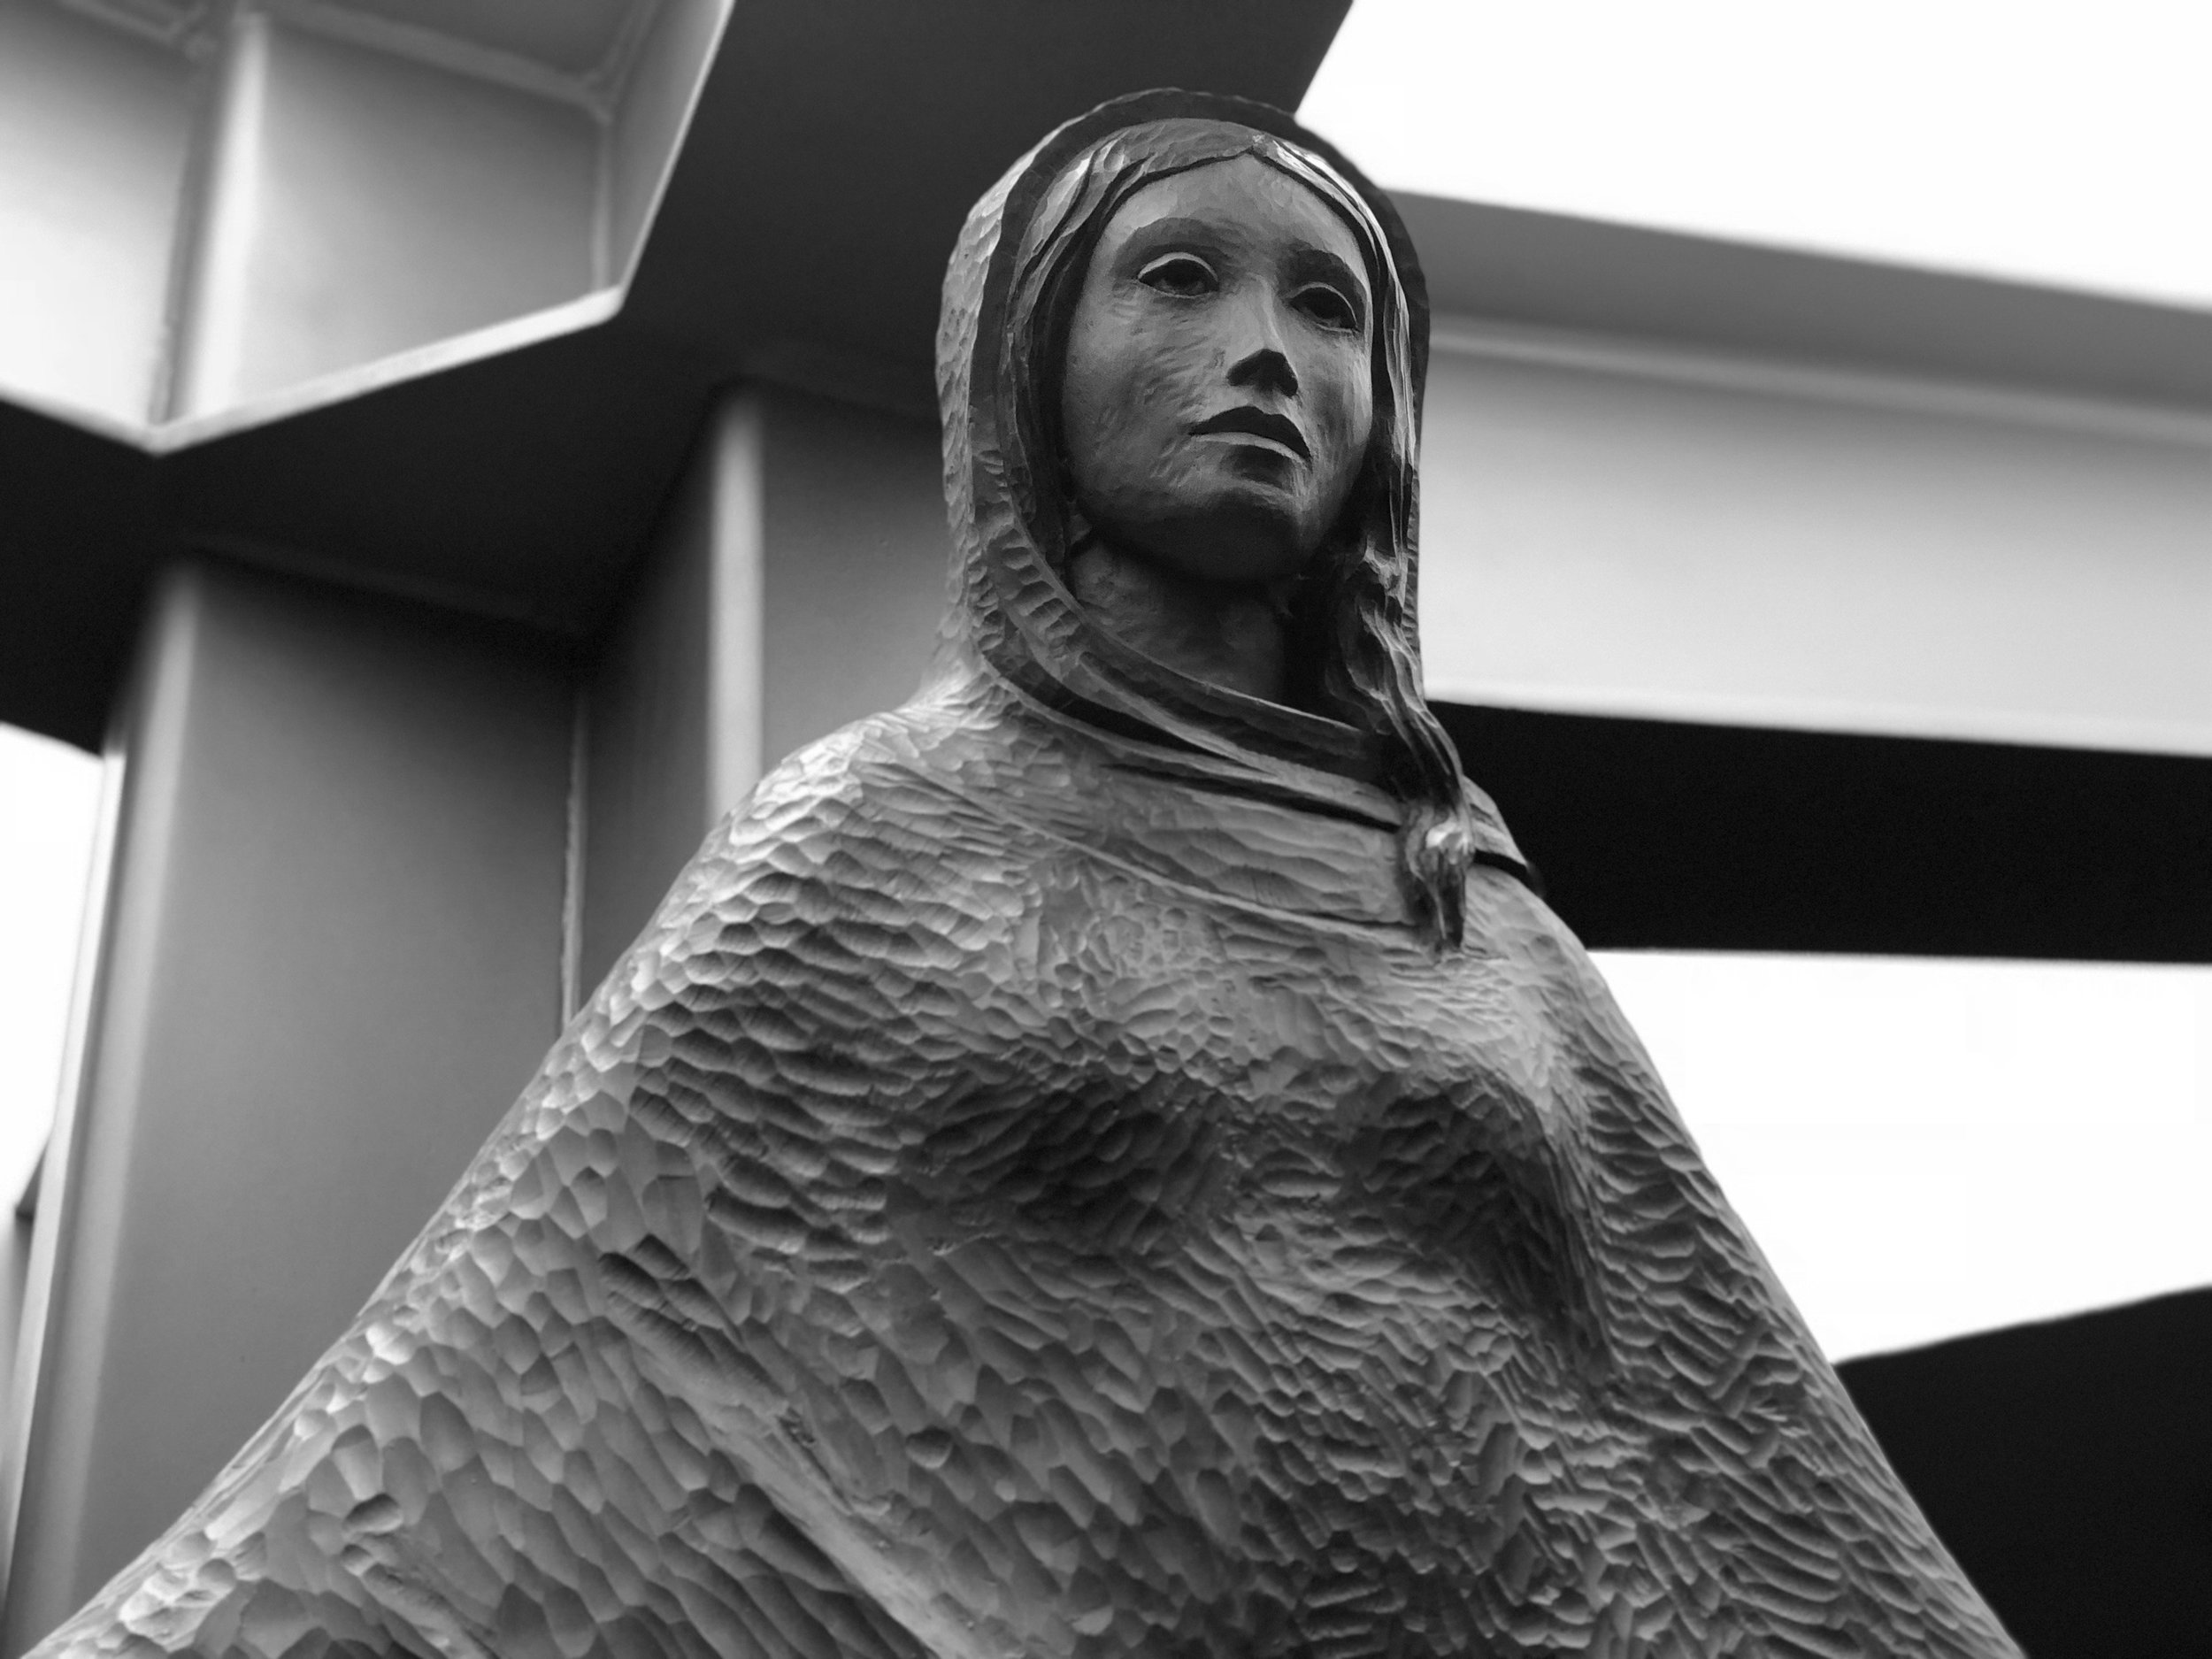 Discipleship - Following Our Lord with Our Lady